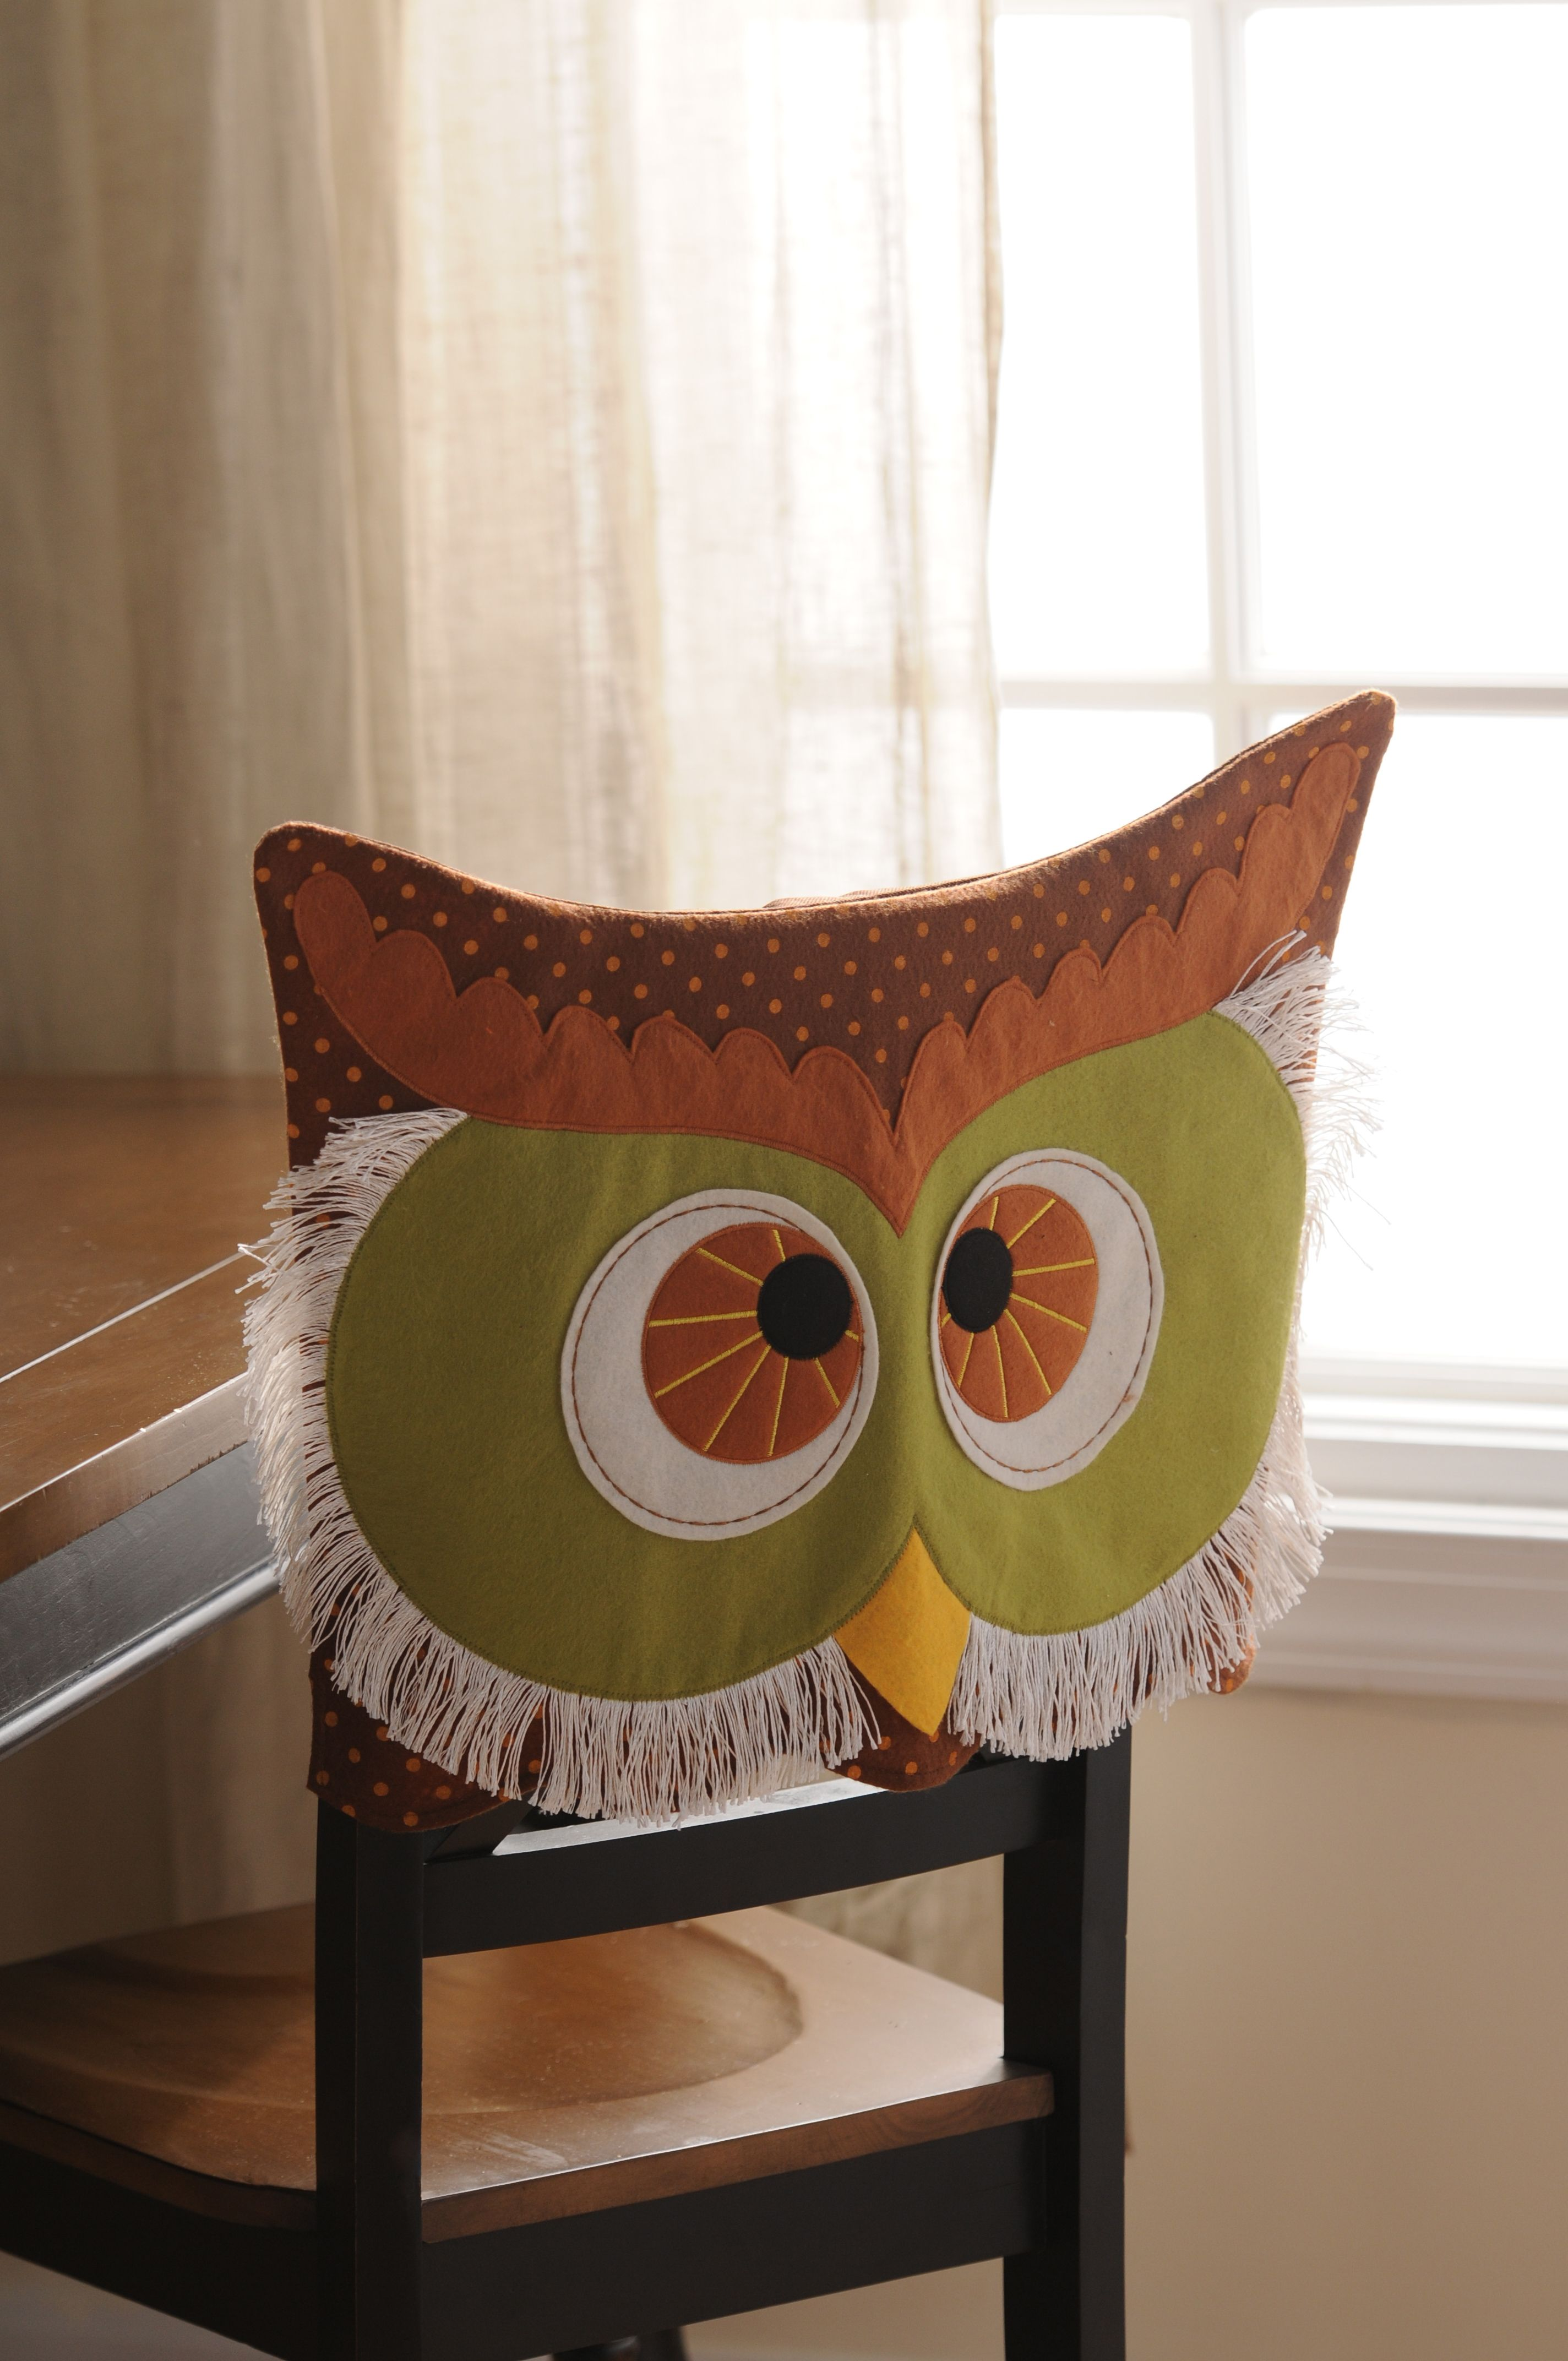 Kirklands Christmas Chair Covers Platform Rocking Owl Decor Seasonaldecor May Be Quottoo Much